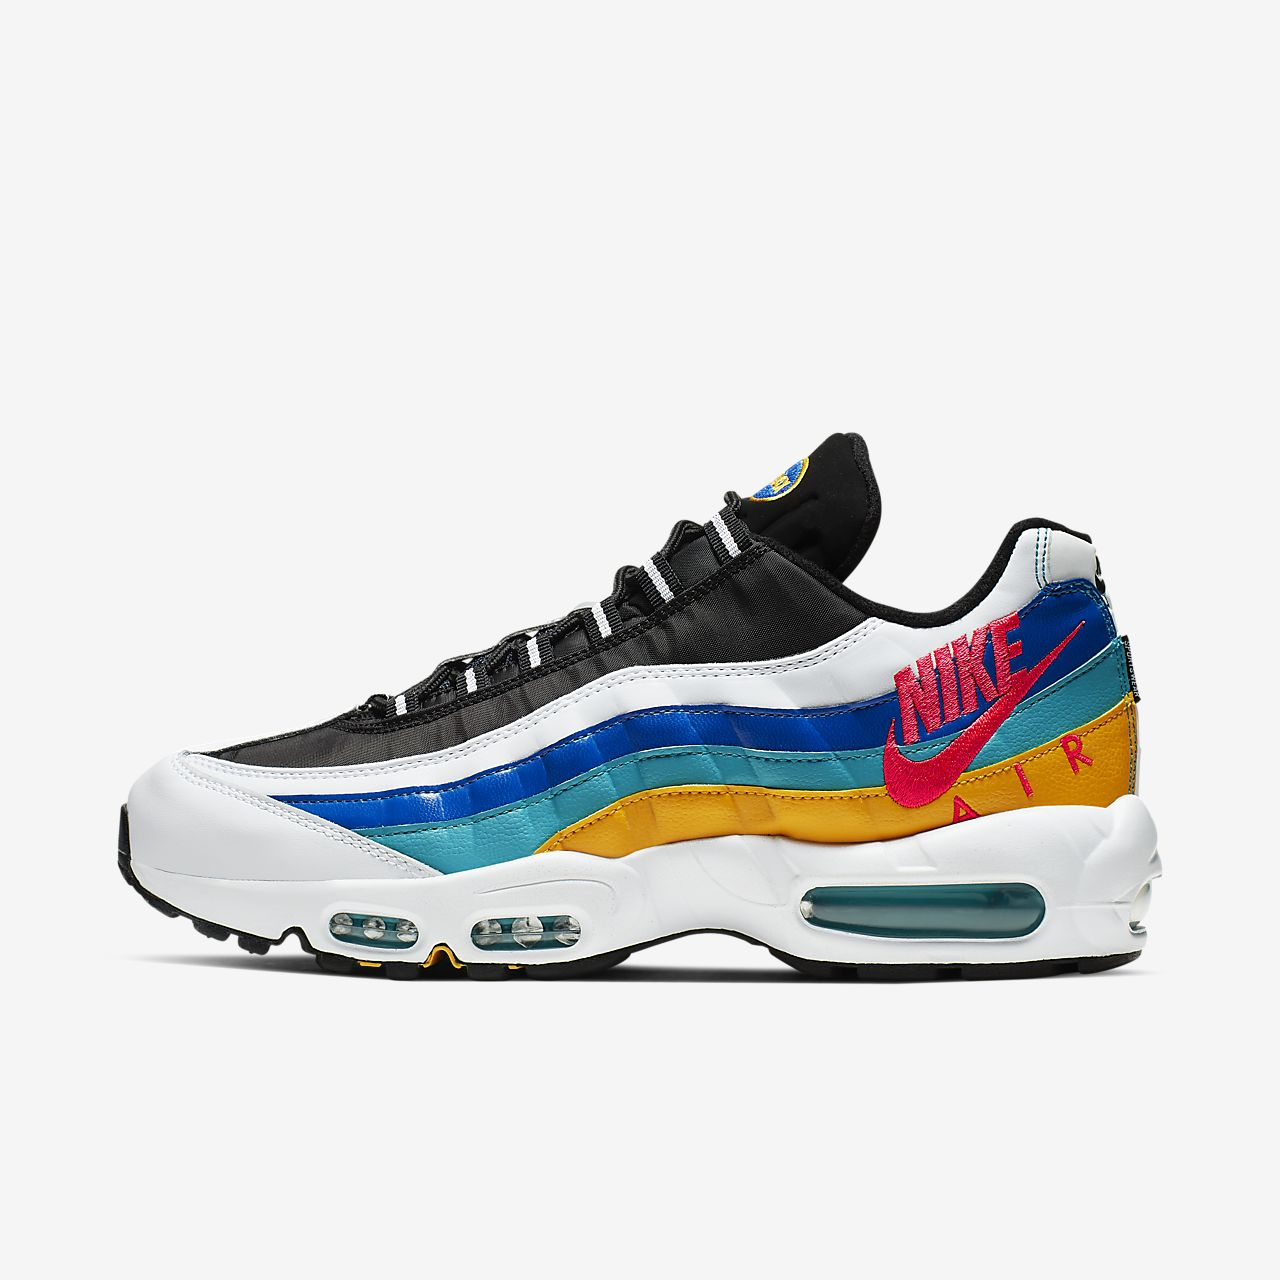 separation shoes be770 79c8e Nike Air Max 95 SE Men's Shoe